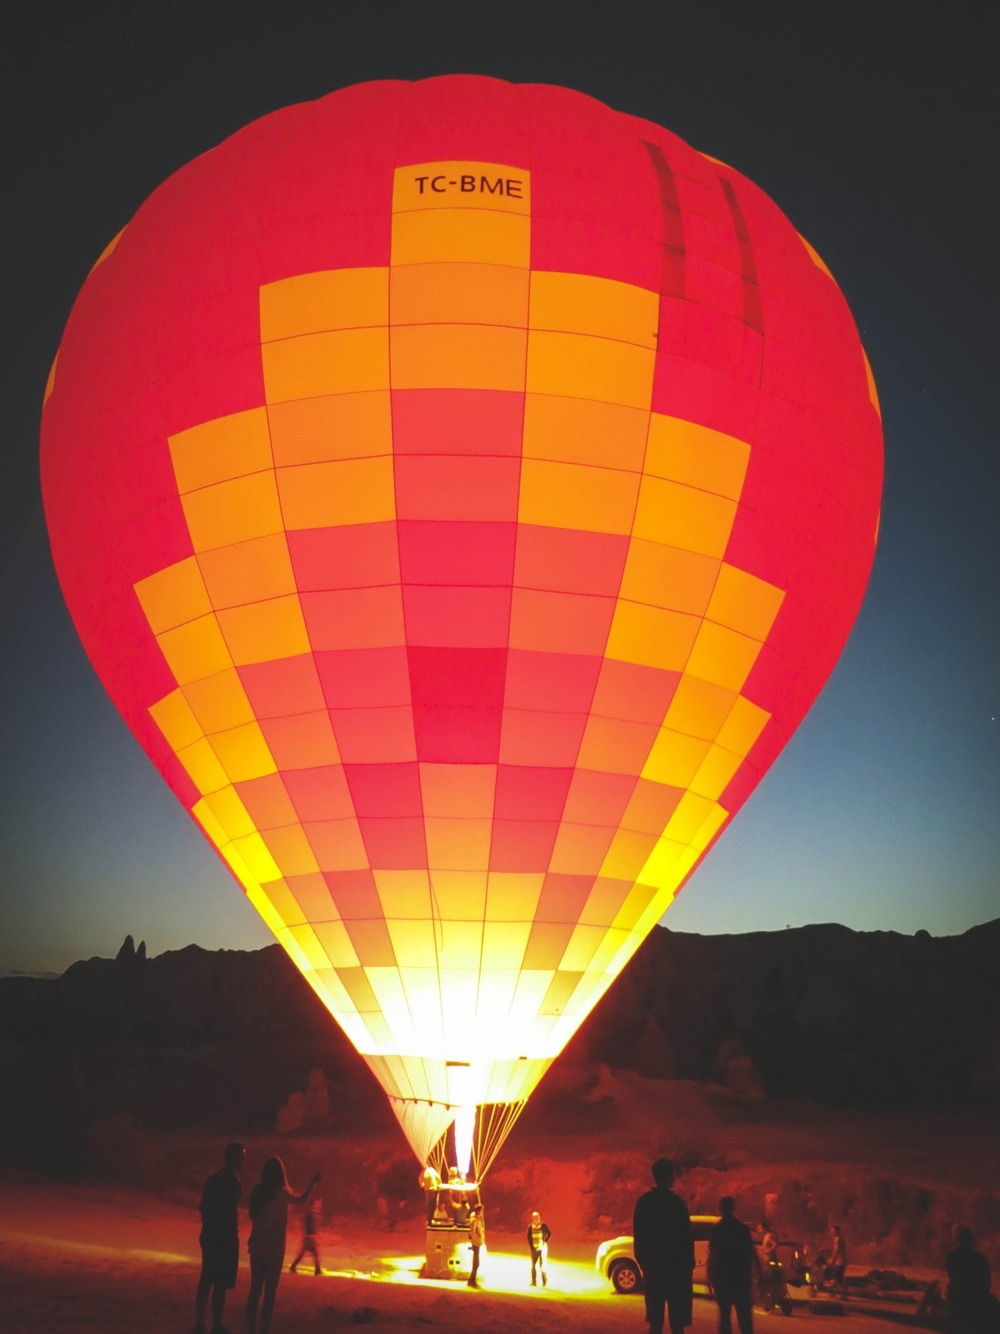 HEAT FROM THE BURNER EXPANDS THE AIR INSIDE THIS HOT AIR BALLOON